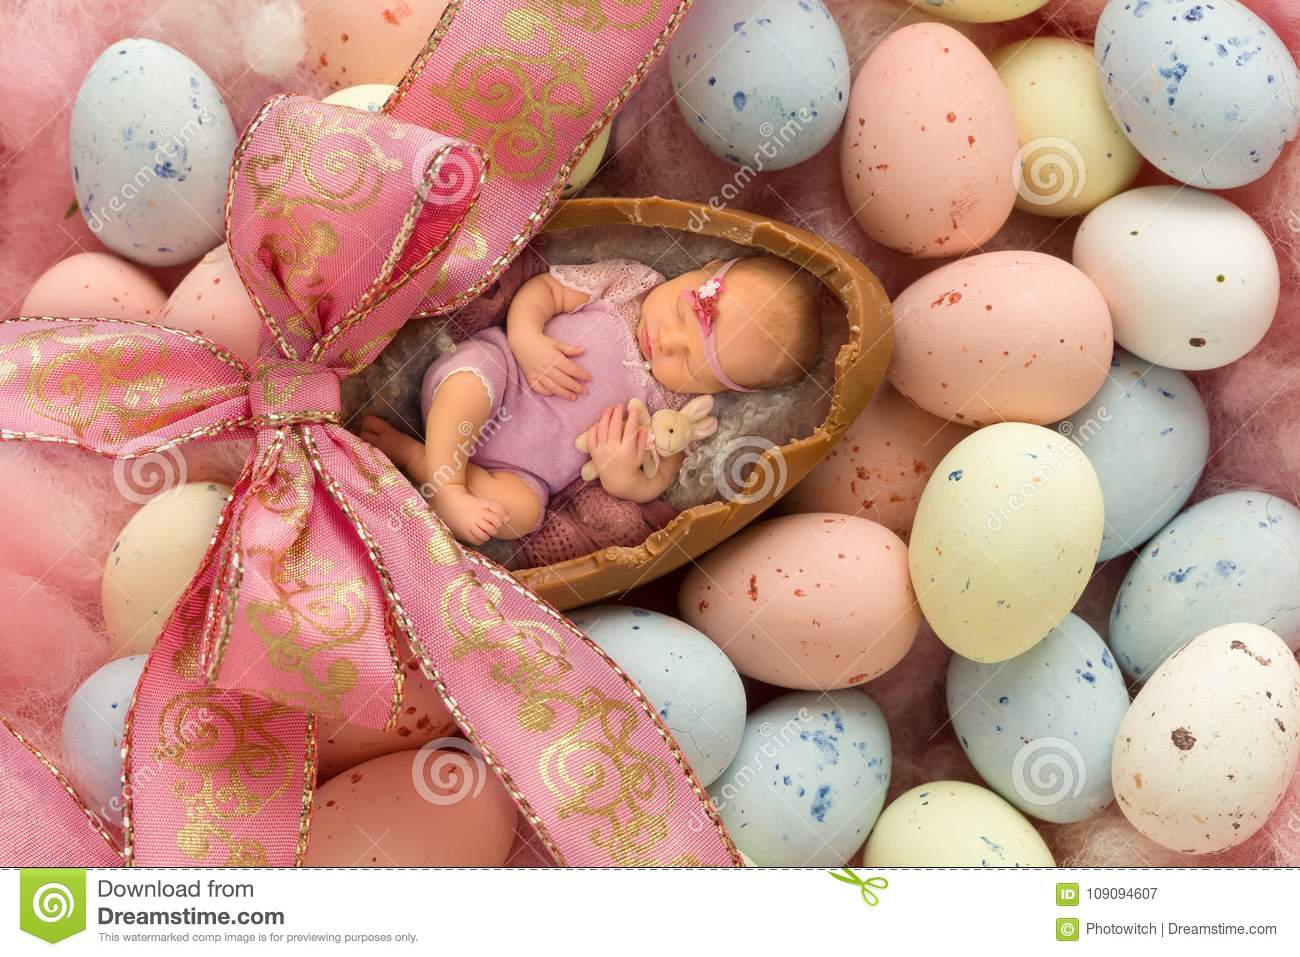 Sleeping baby in easter egg